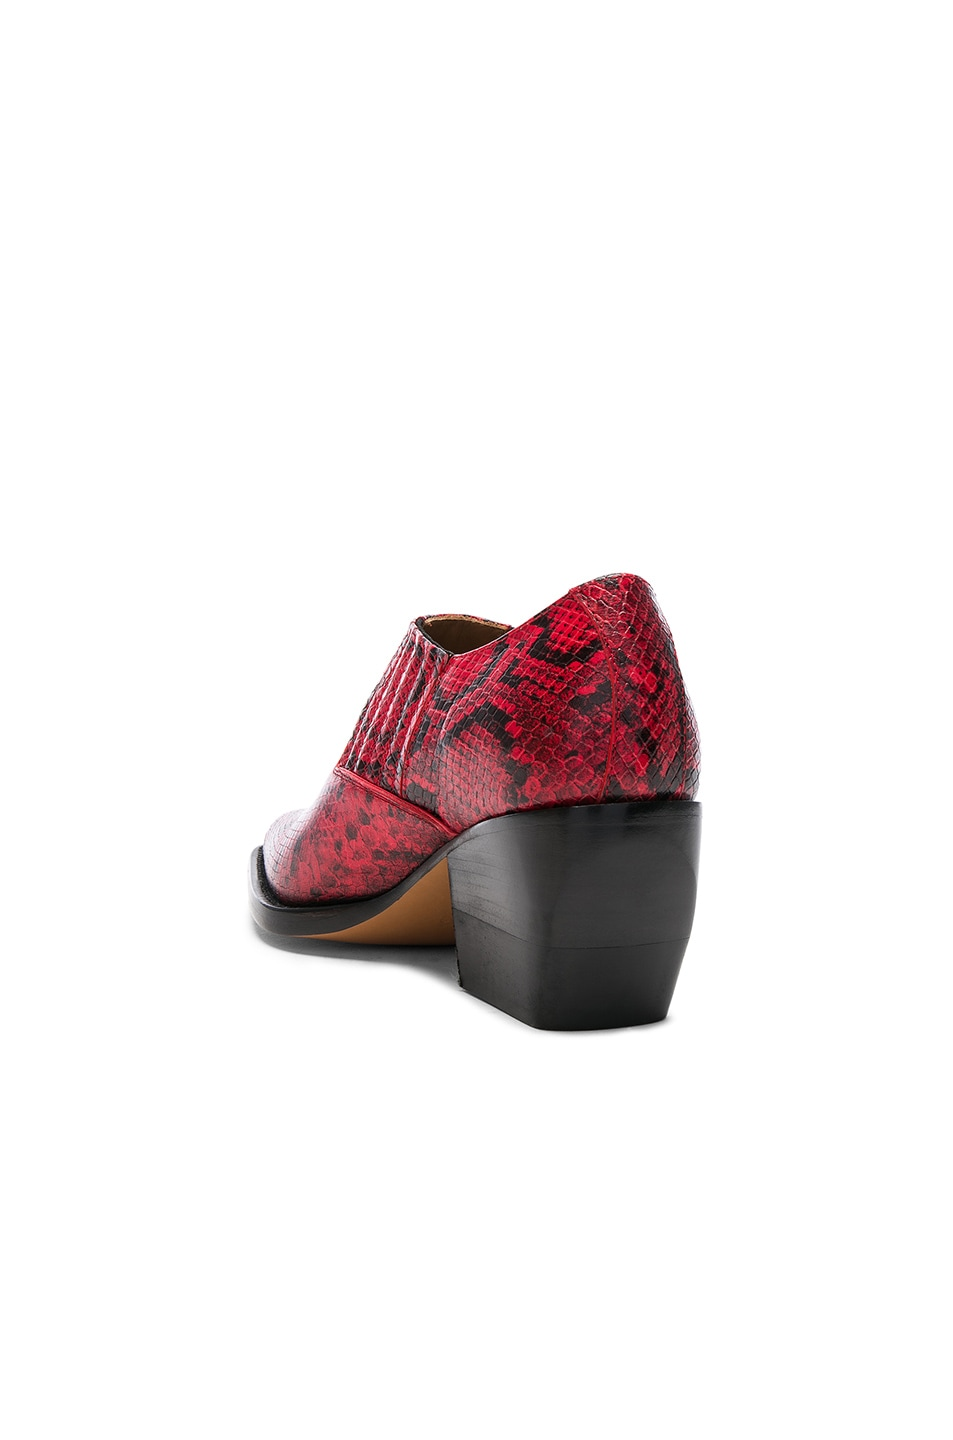 Image 3 of Chloe Rylee Python Print Leather Ankle Boots in Gypsy Red